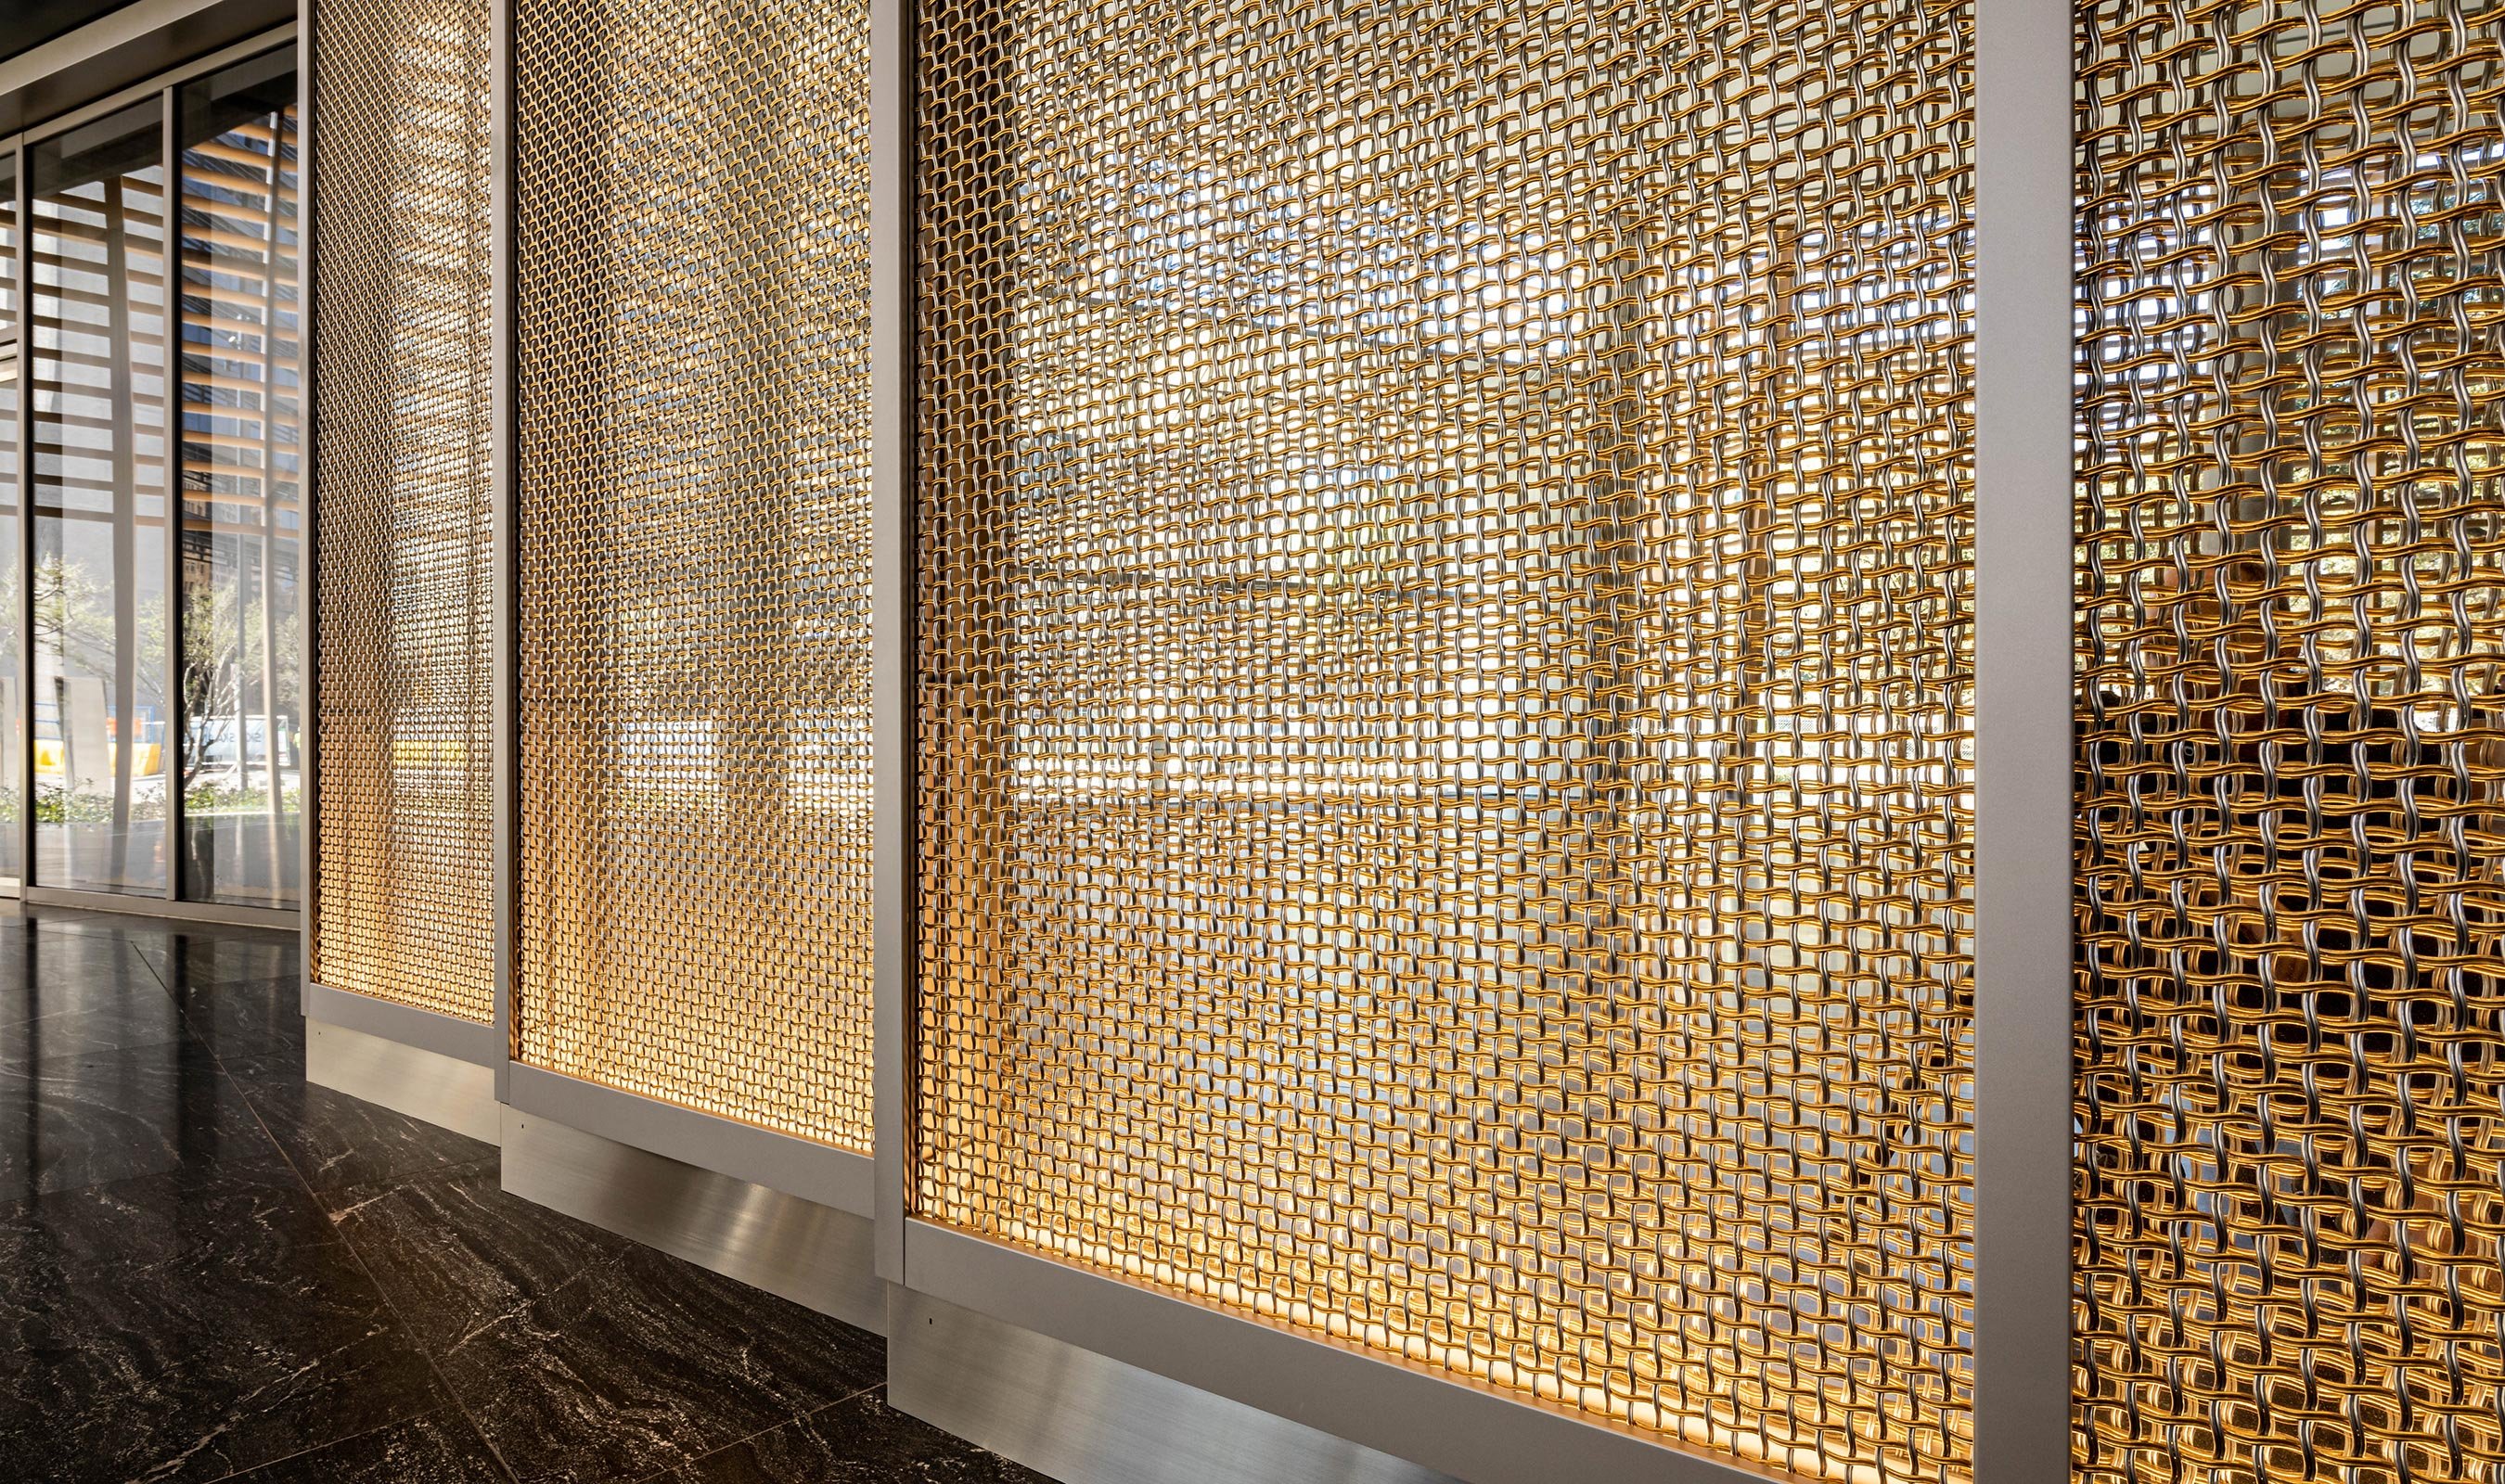 Banker Wire M22-80 stainless steel and brass decorative wire mesh interior wall panel